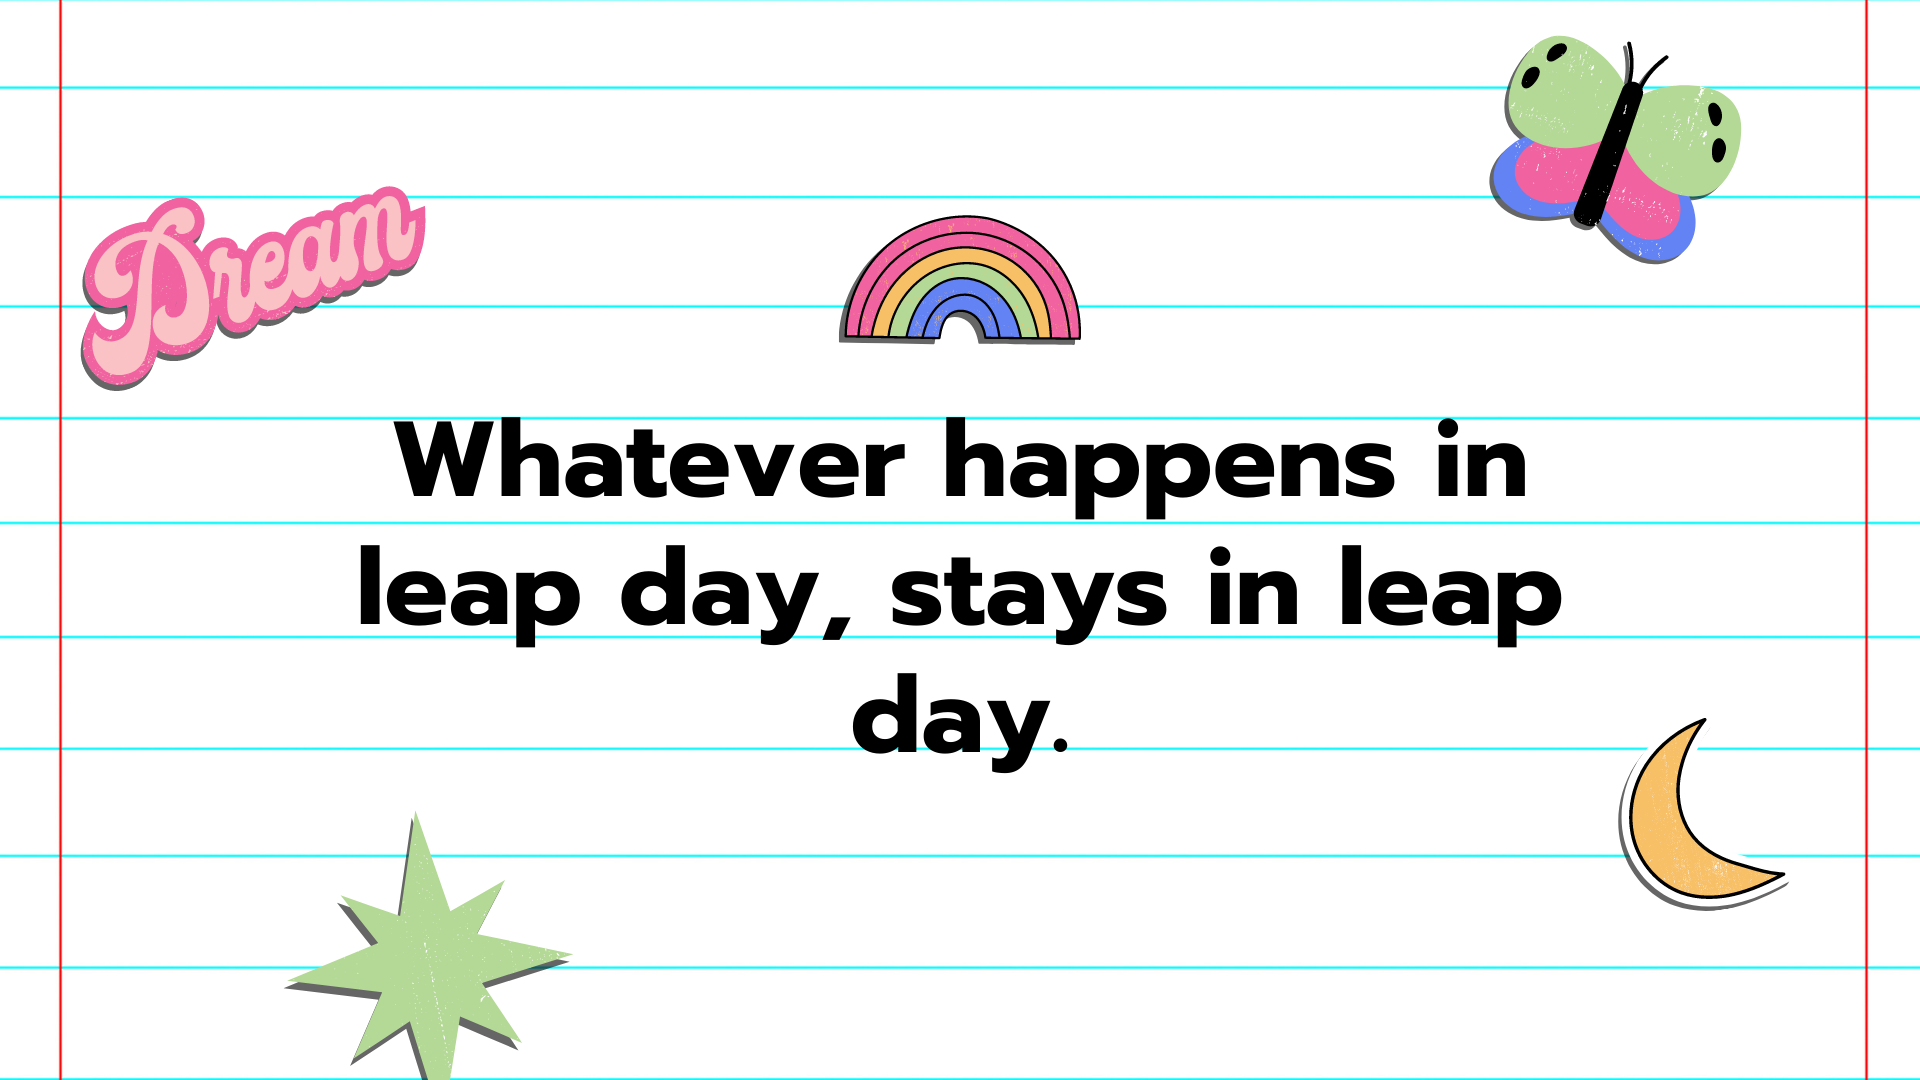 Funny Quotes To Use As Captions On Leap Day  - Funny Quotes to Use as Captions on Leap Day - 58+ LEAP YEAR Instagram Captions for Birthdays & February in 2022